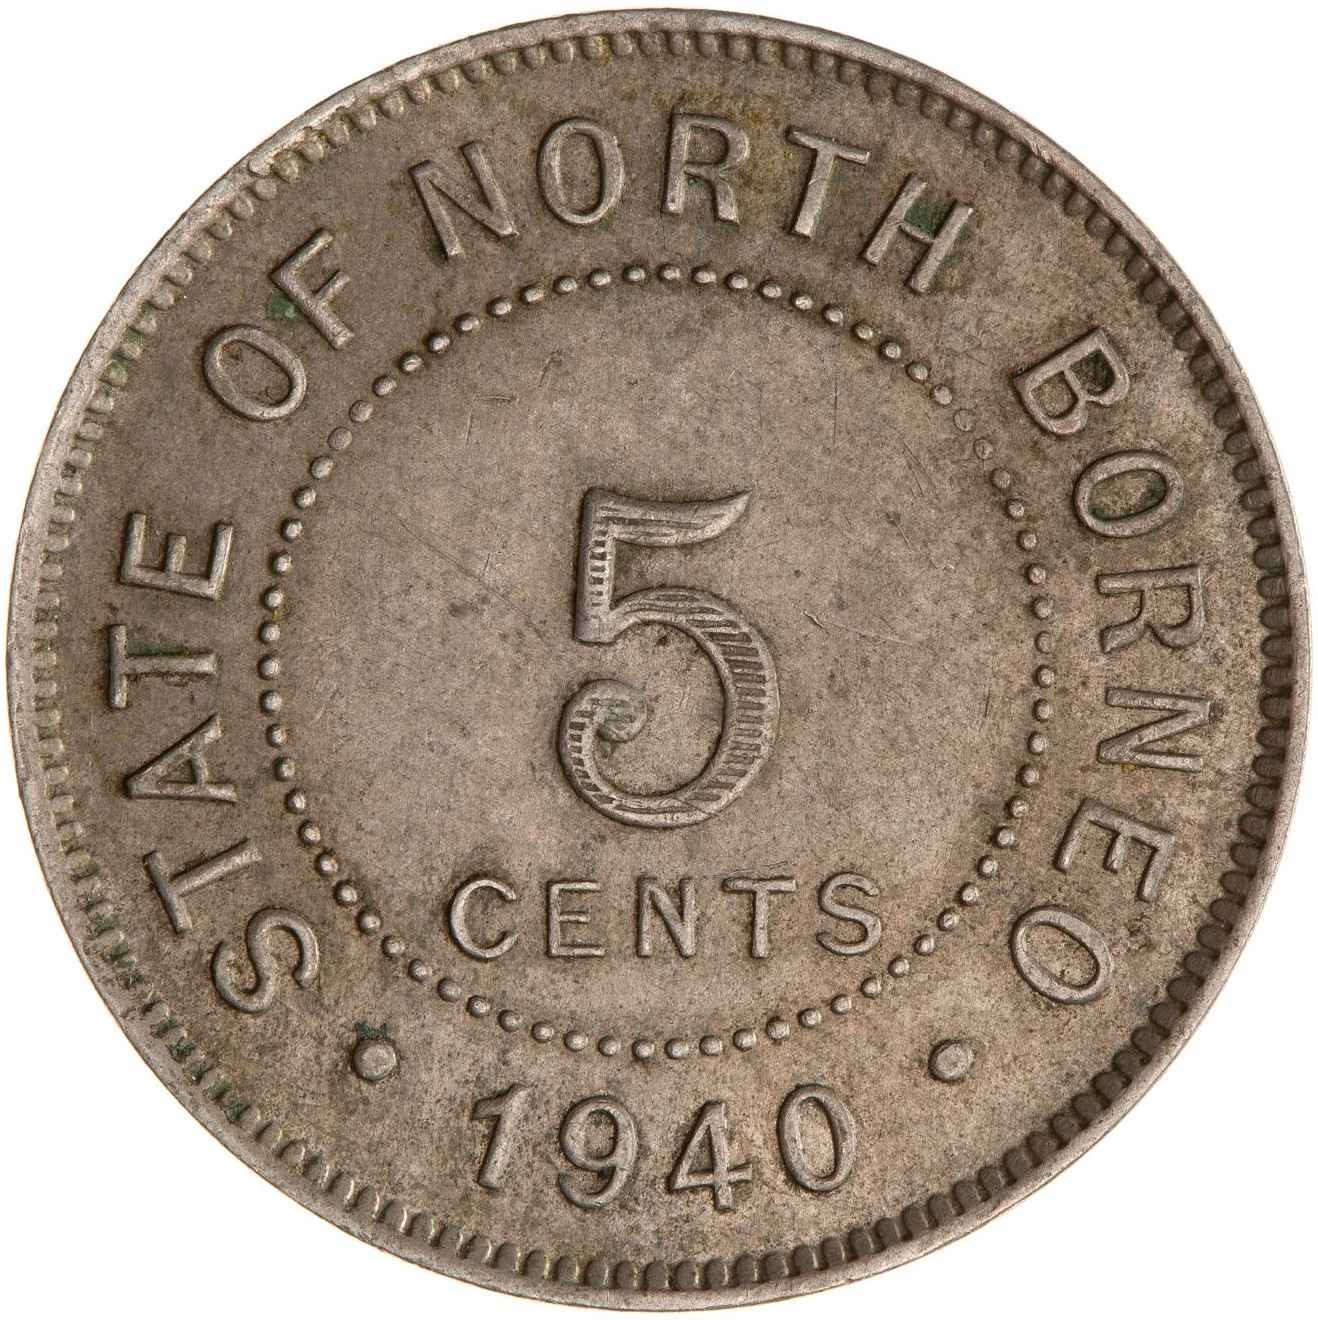 Five Cents 1940: Photo Coin - 5 Cents, North Borneo, 1940